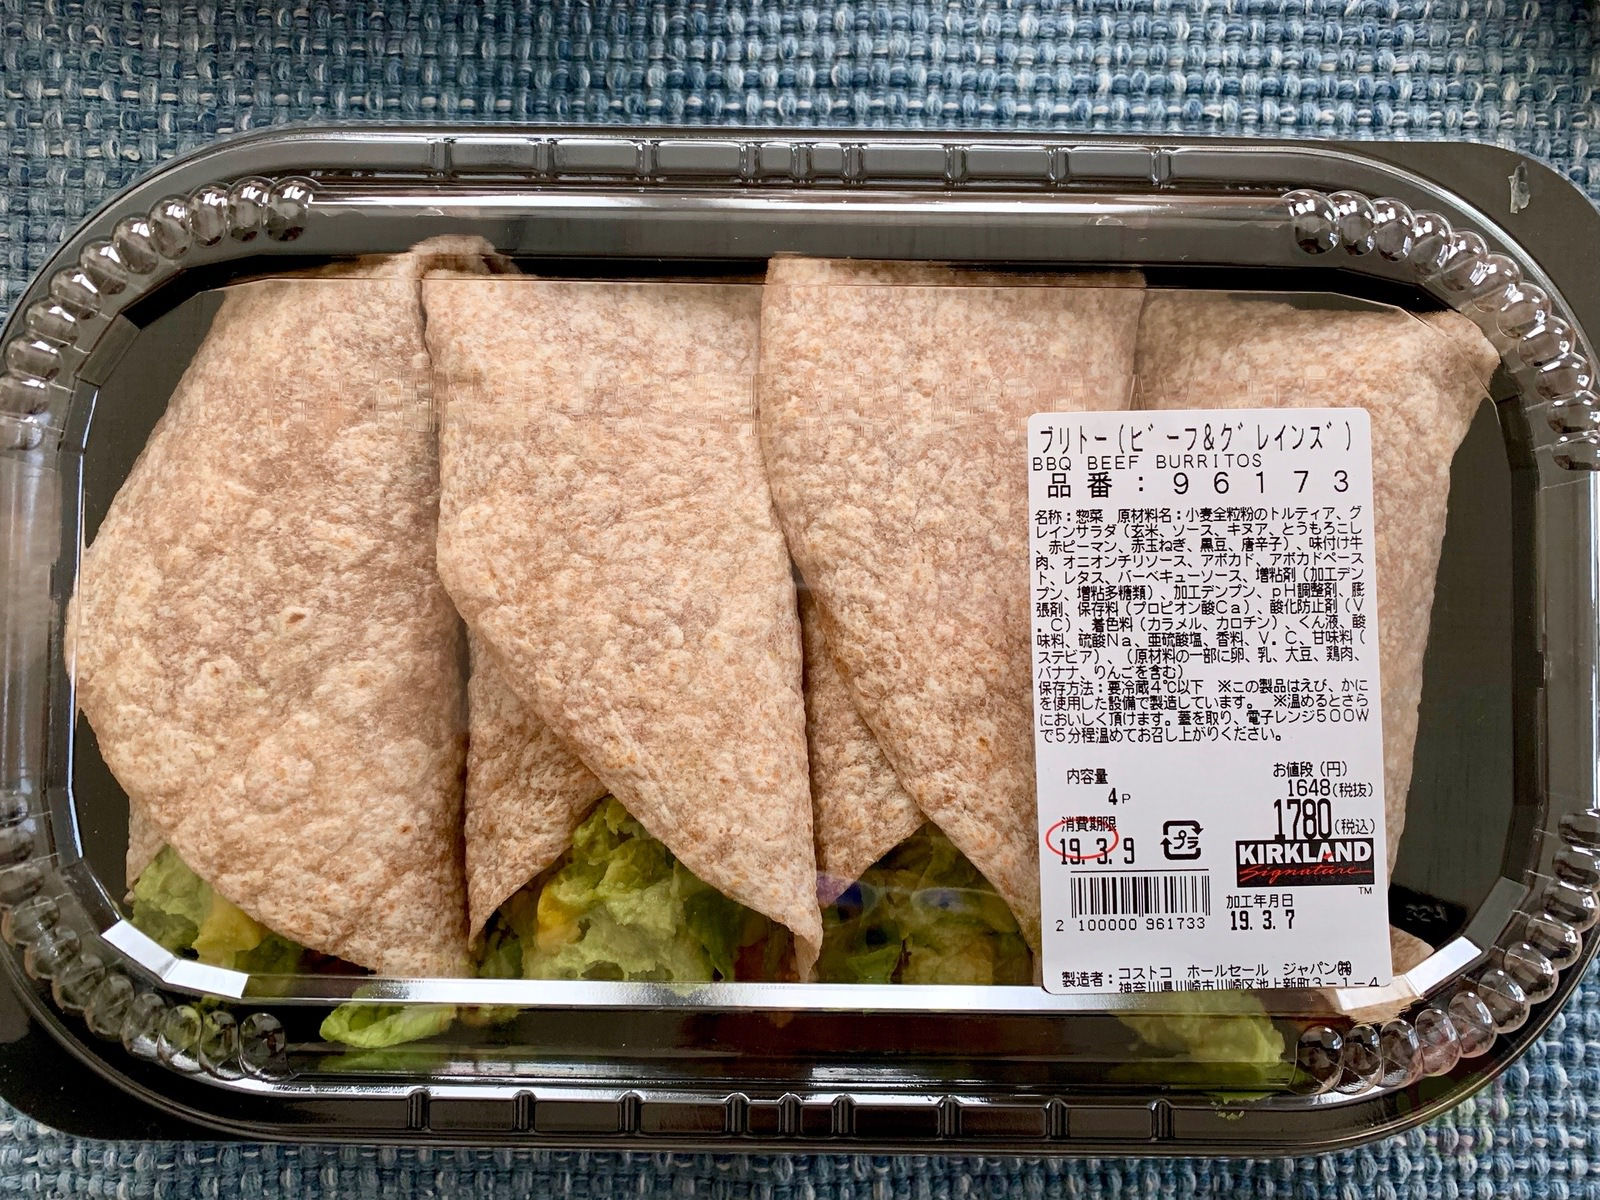 Costco BBQ Beef Burritos Beef and Grains 01